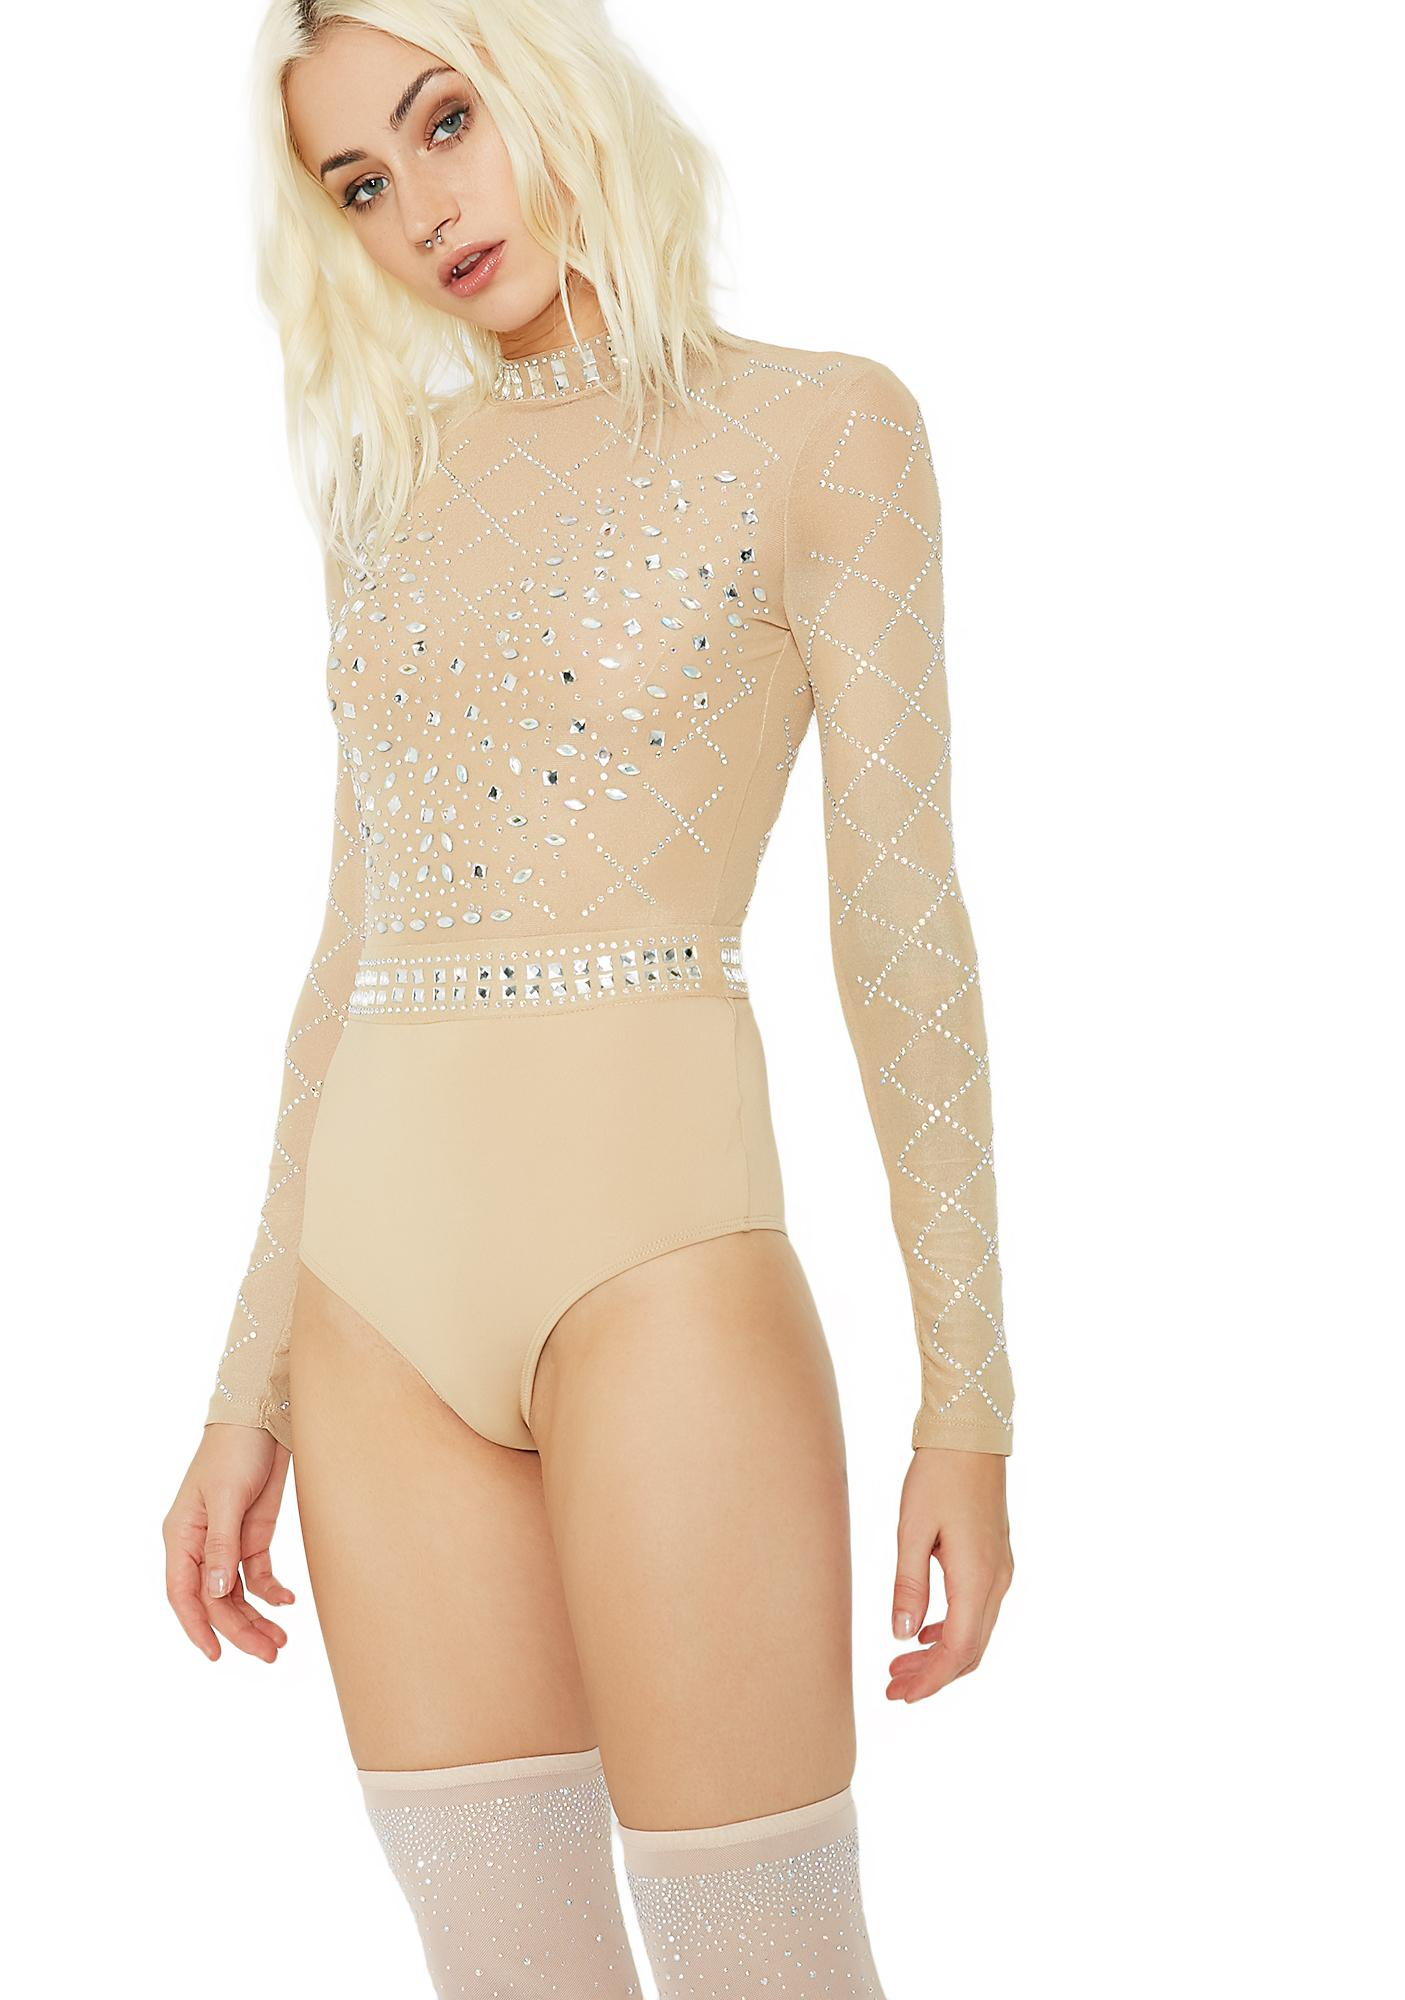 She's Toxic Embellished Bodysuit